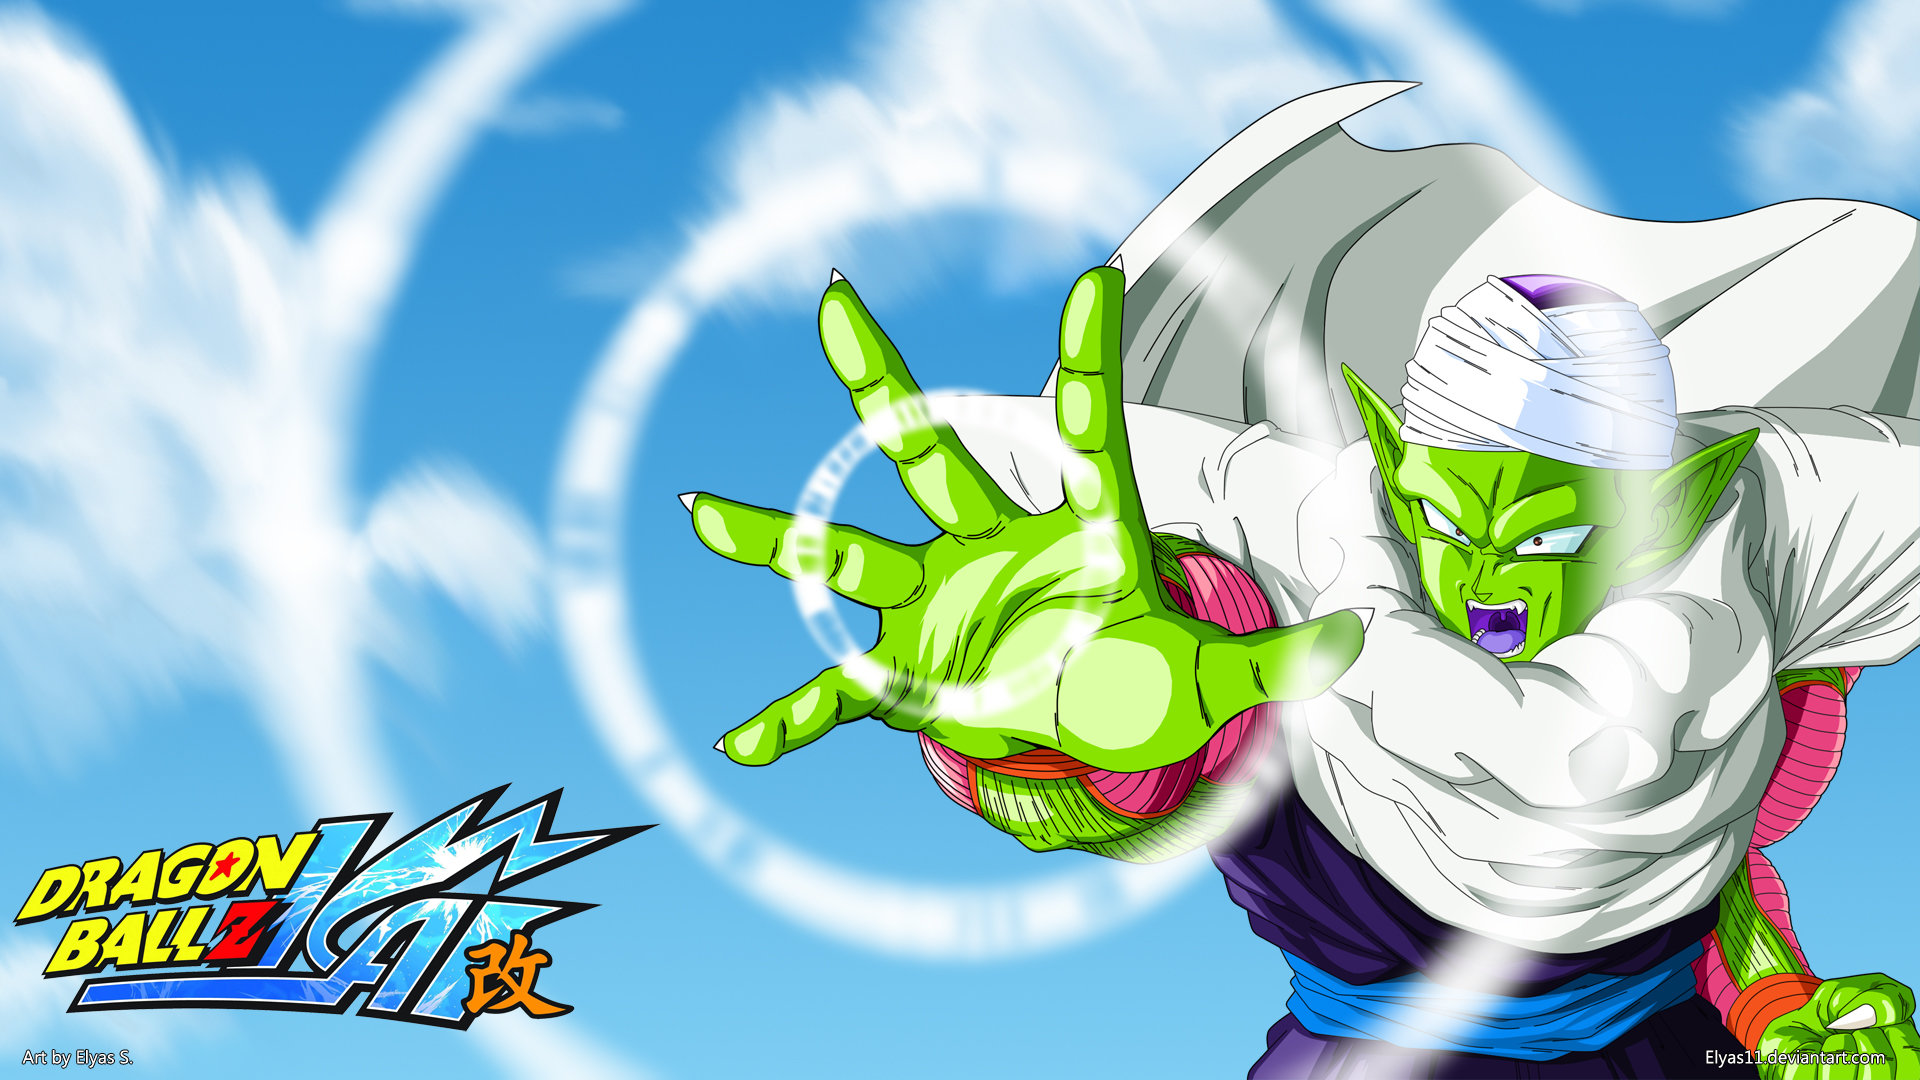 Awesome Dragon Ball Z Kai free wallpaper ID:100079 for full hd computer